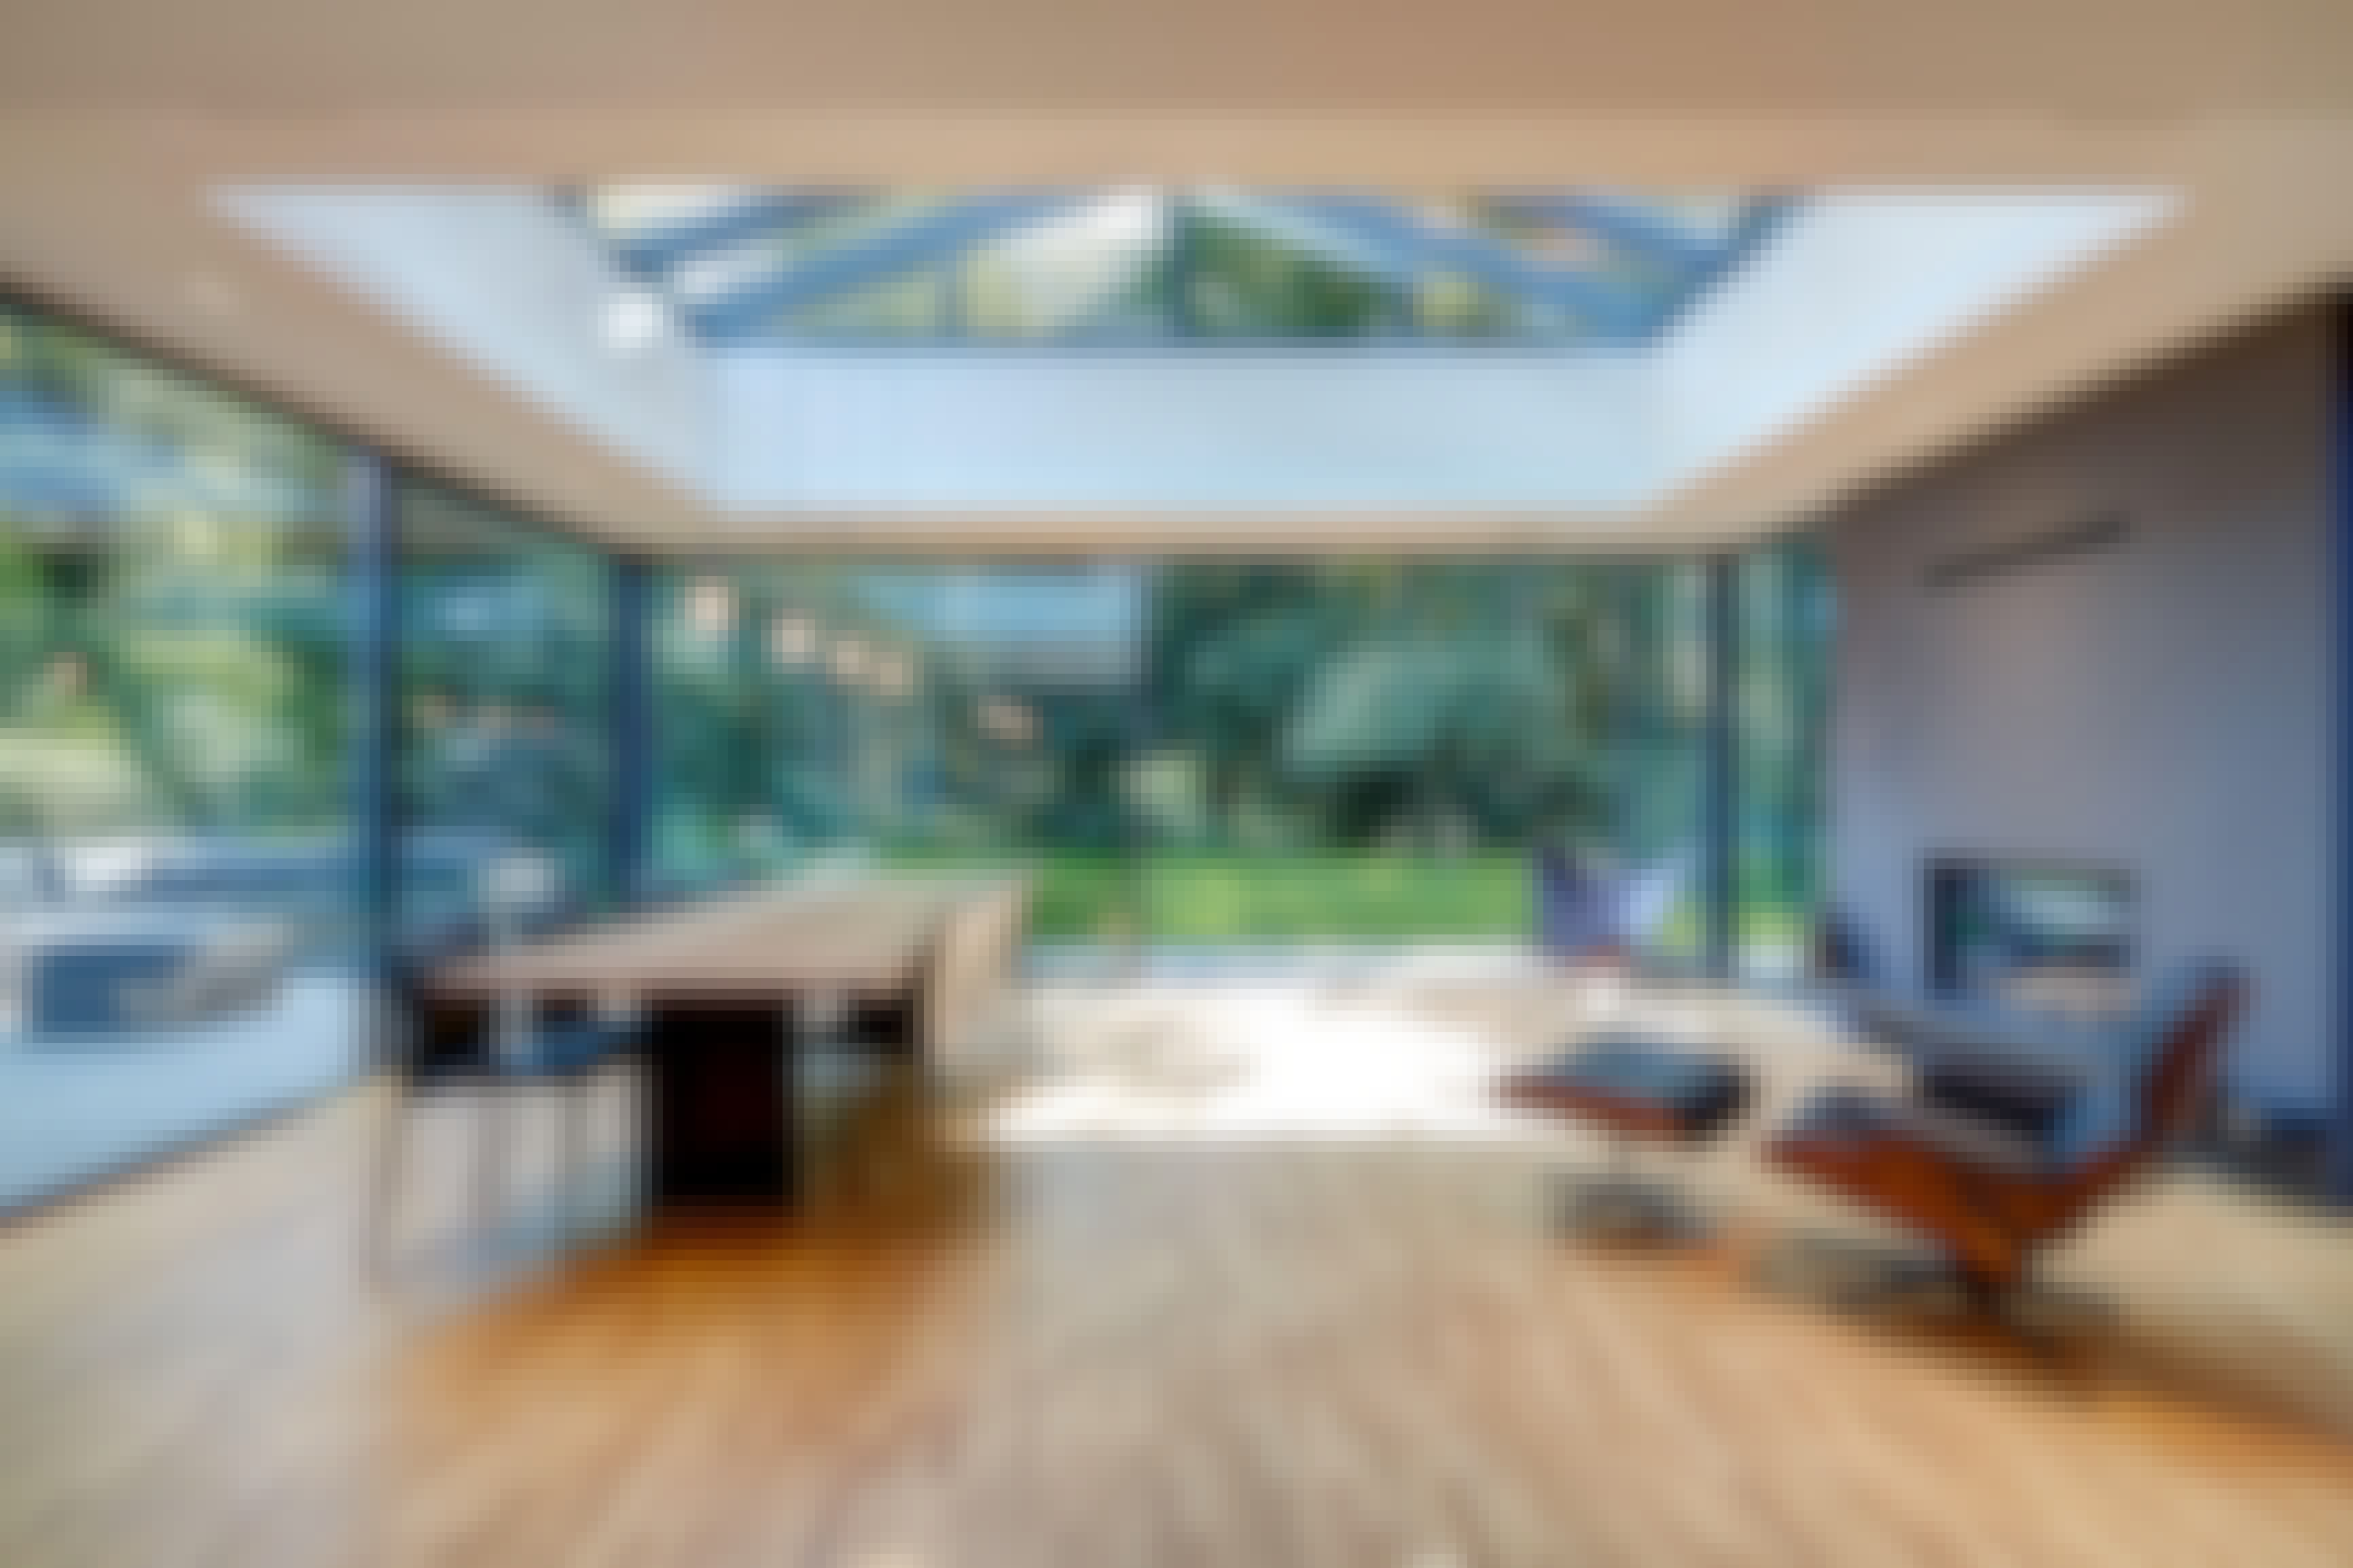 multi-track-sliding-glass-walls-can-open-an-entire-space